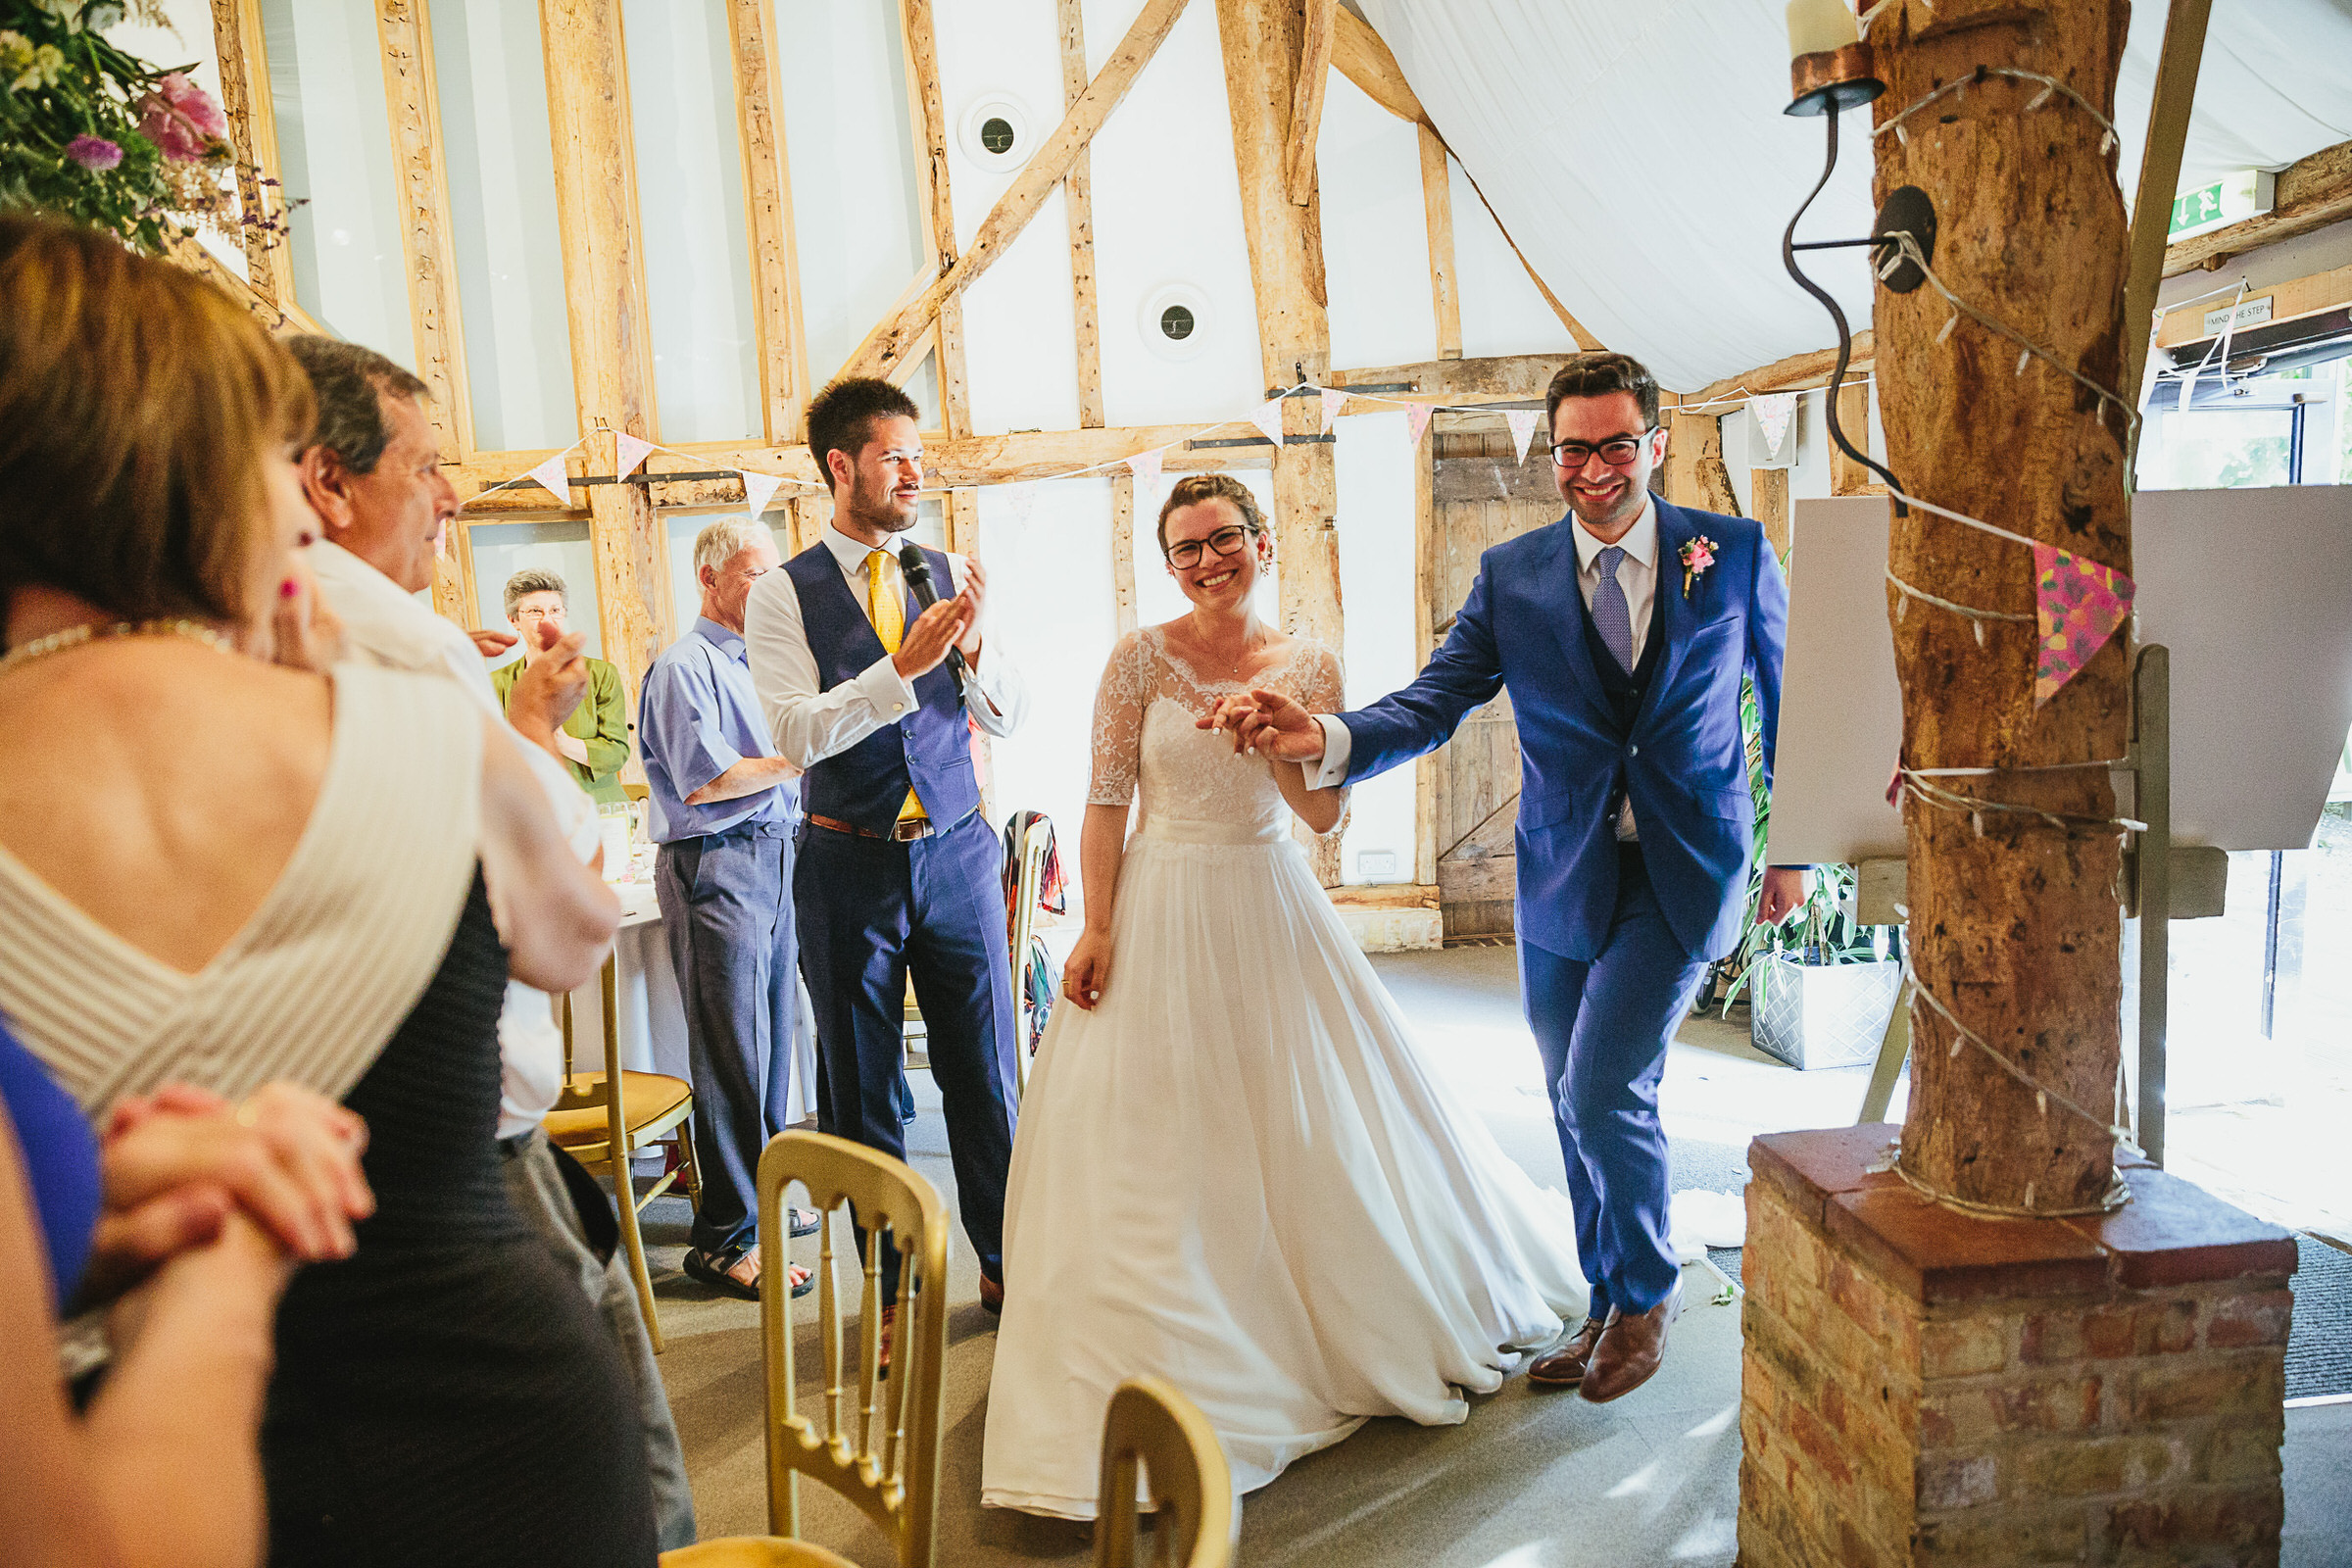 South Farm wedding - Toto & Benji